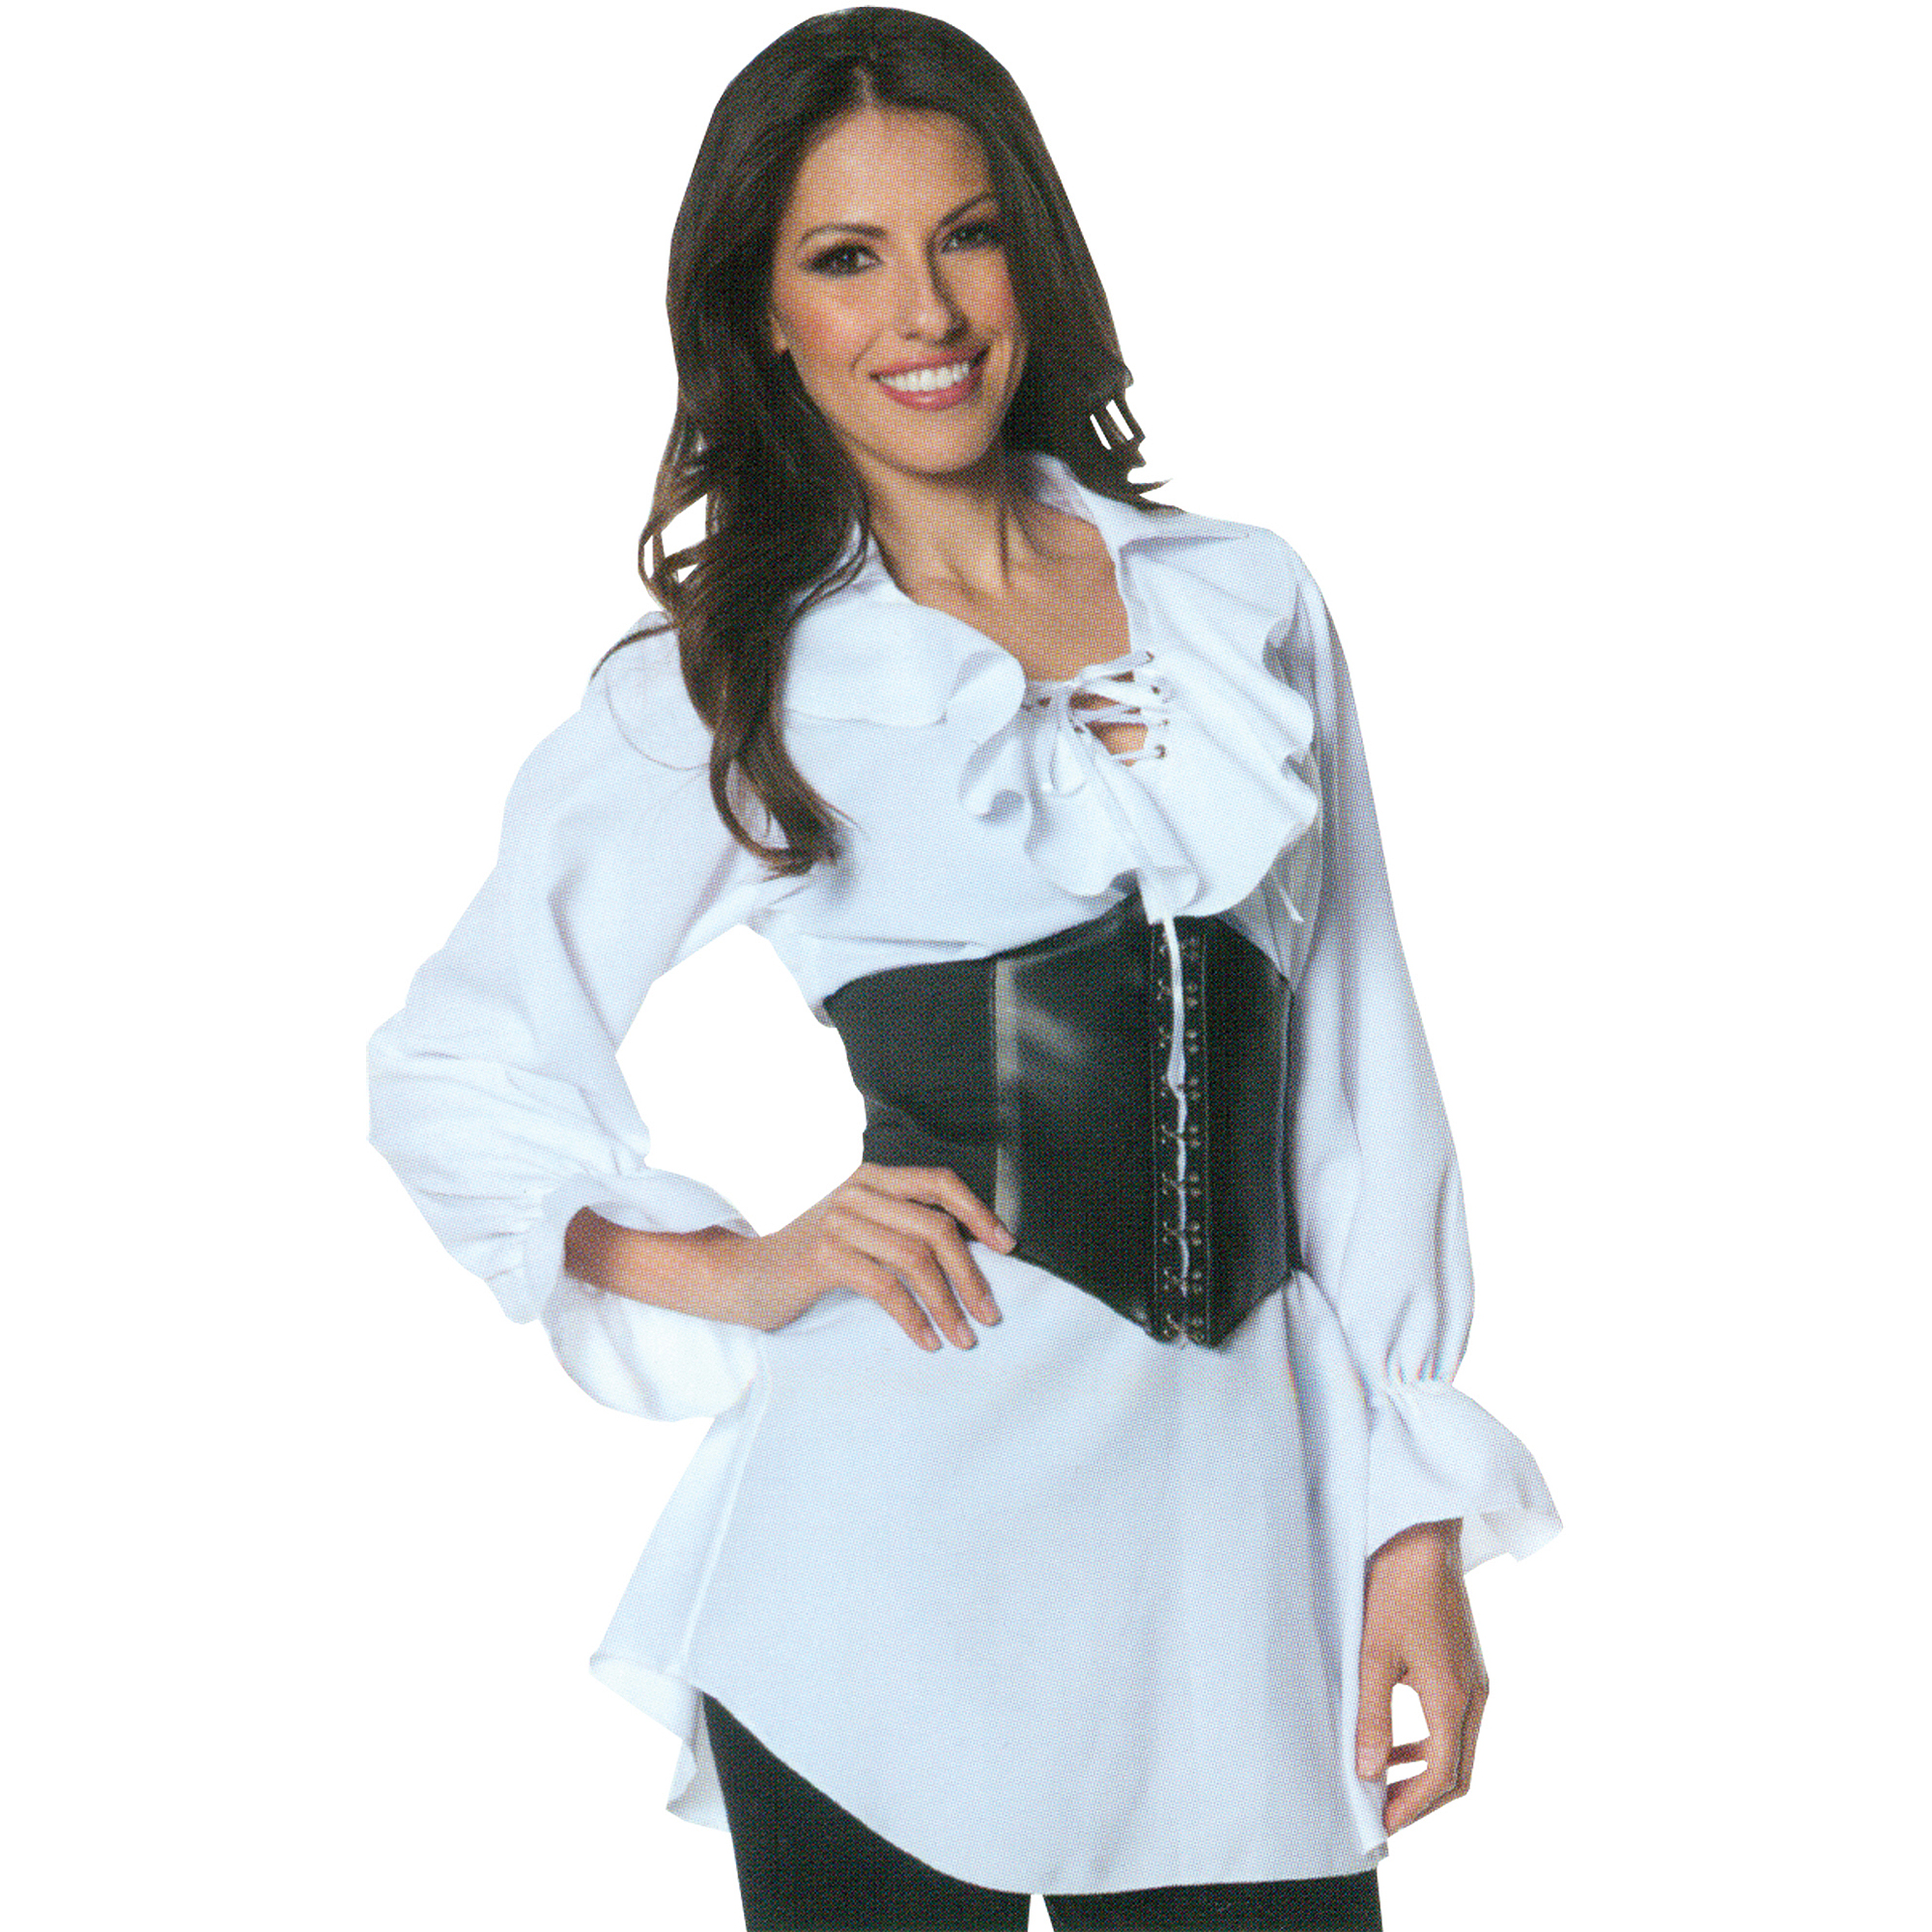 Pirate laced front blouse adult halloween costume walmart solutioingenieria Choice Image